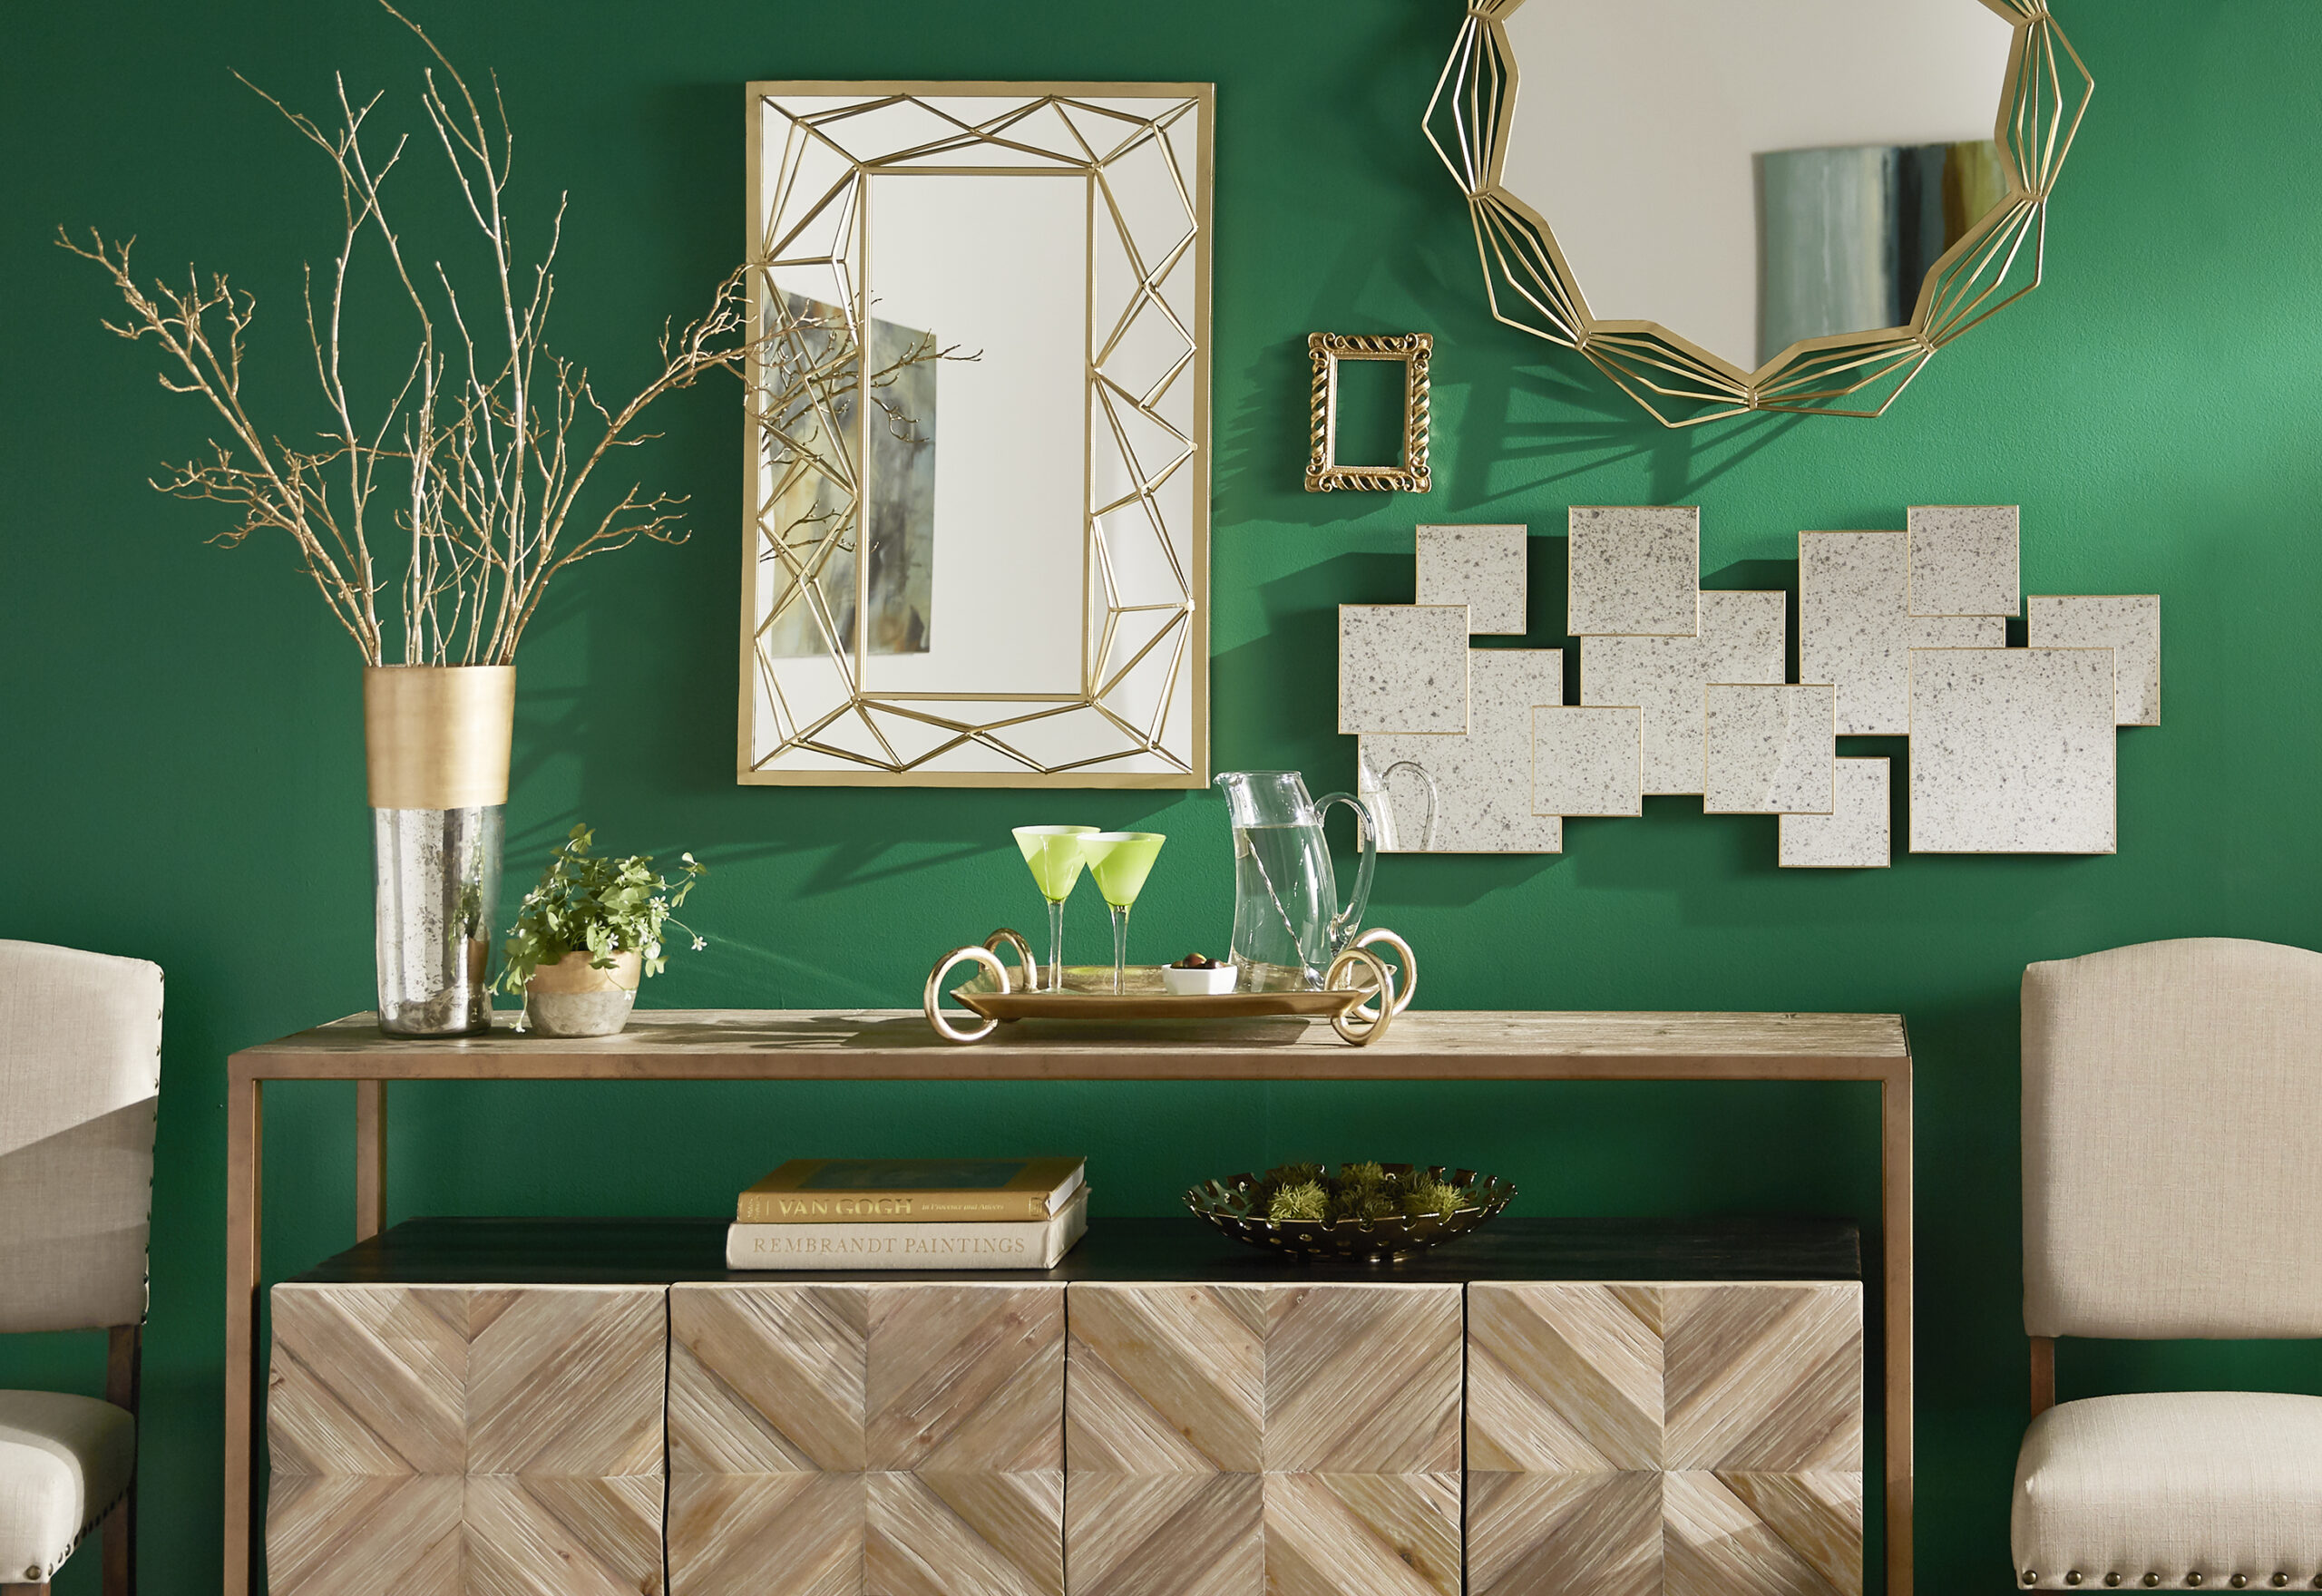 This picture shows what this post is all about: mirror decorating ideas. Three different mirrors hang over a server for an eye-catching look.